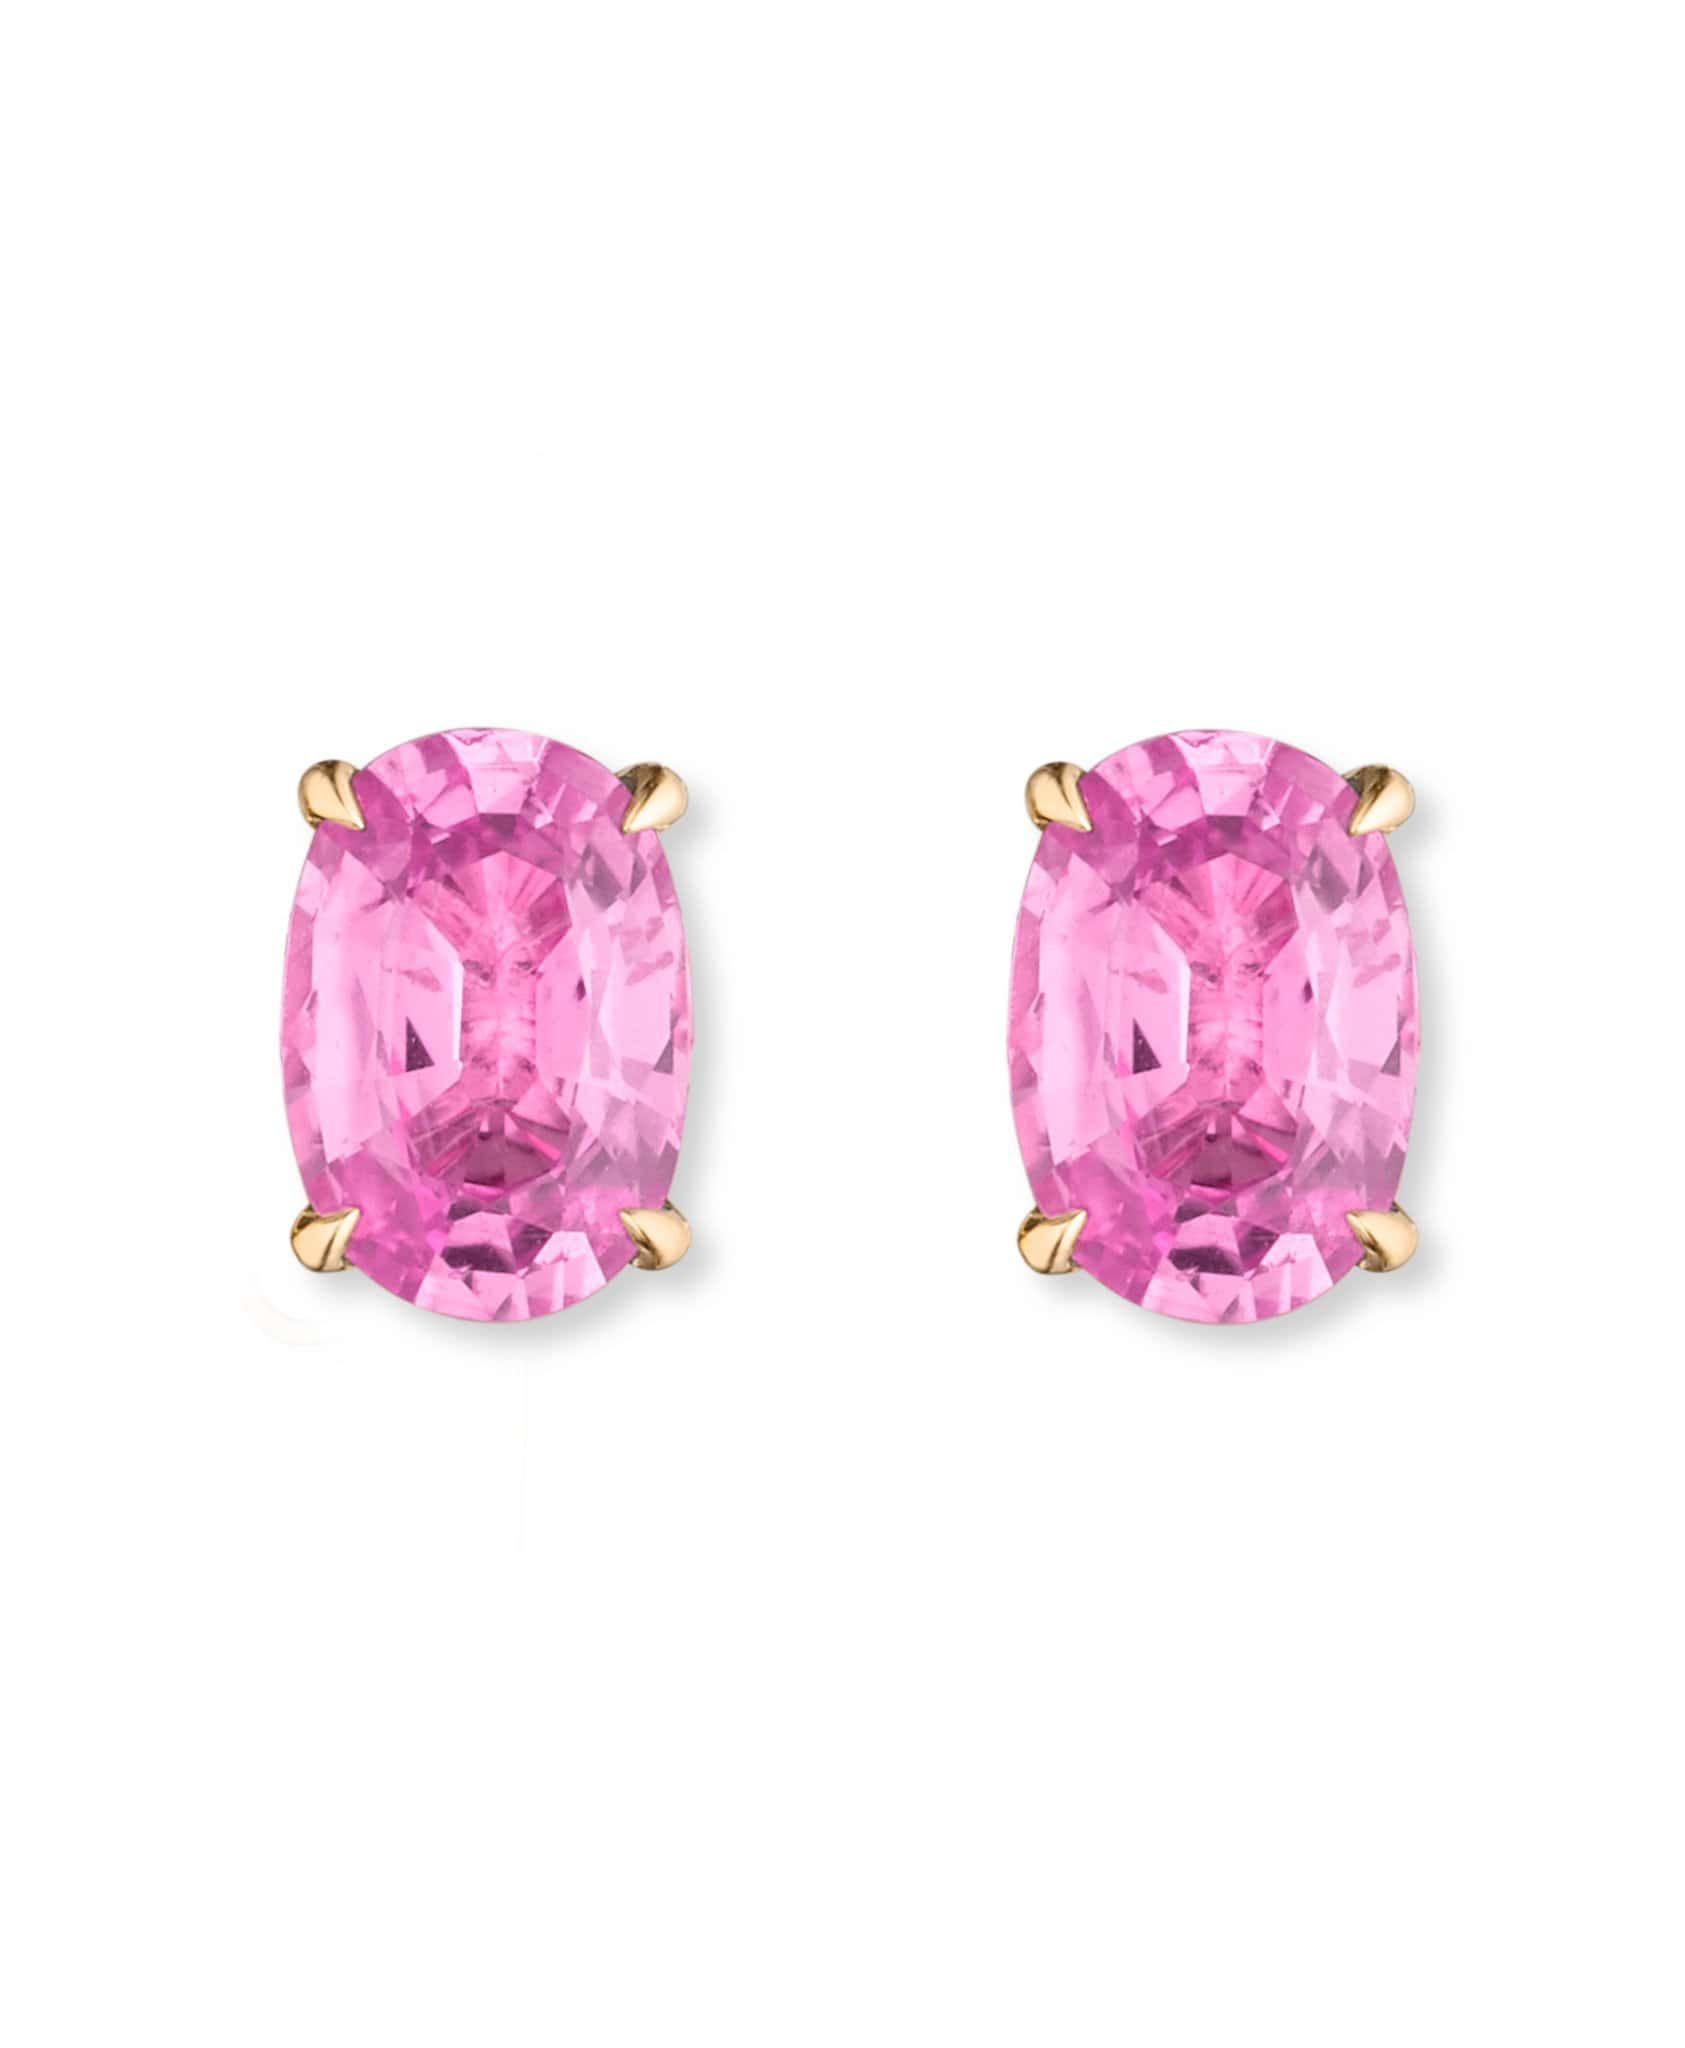 Tessa Pink Tourmaline: Discover Luxury Fine Jewelry | Nouvel Heritage